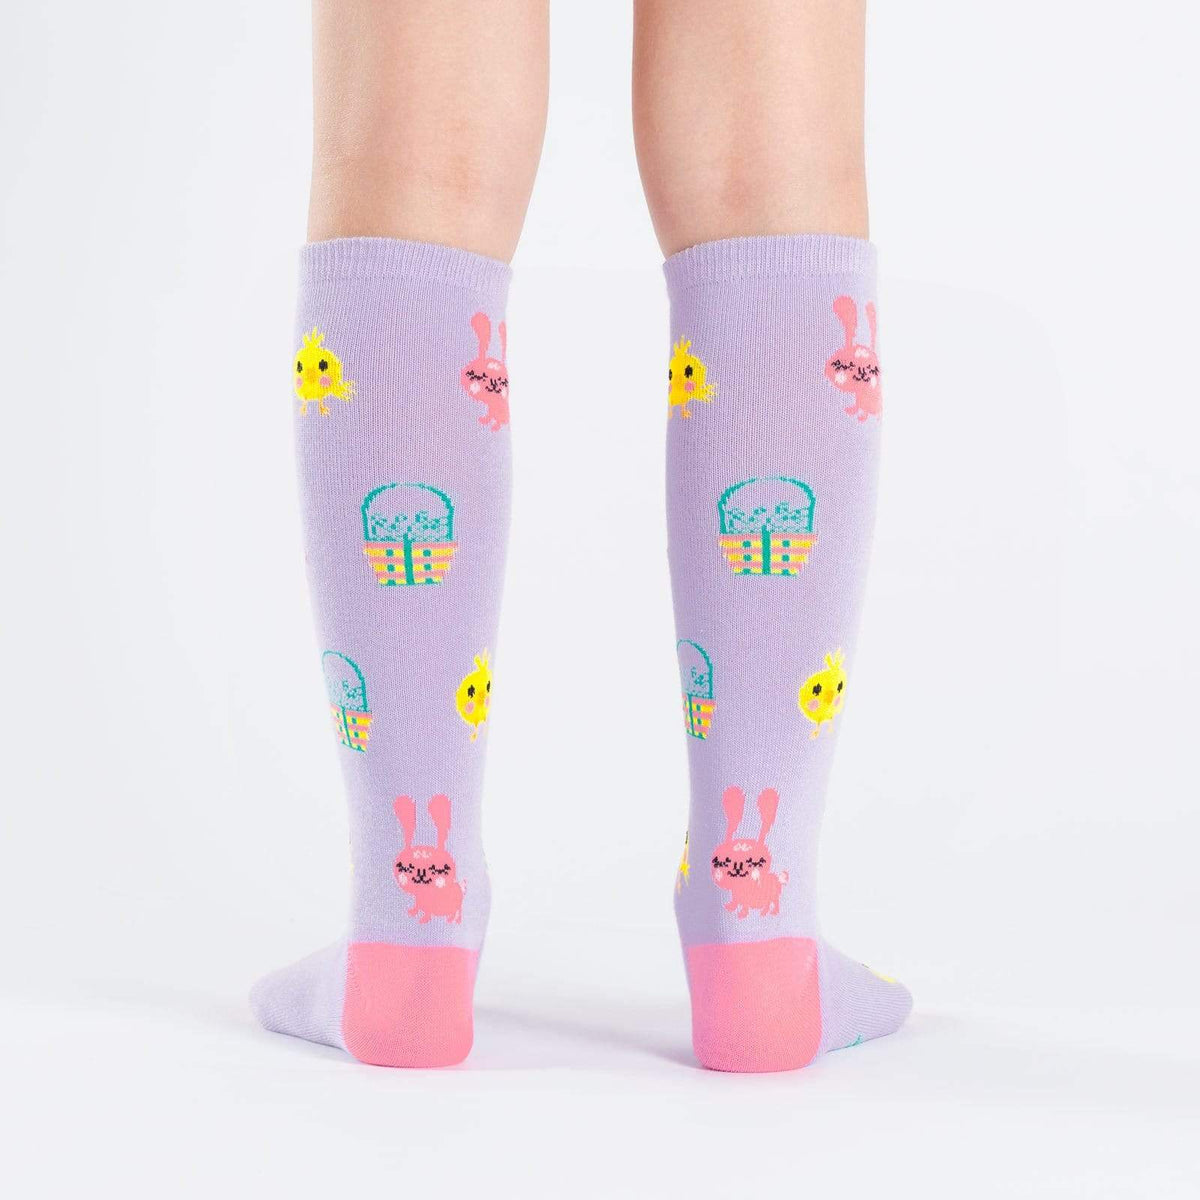 Hoppy Easter Junior Knee High Socks rear